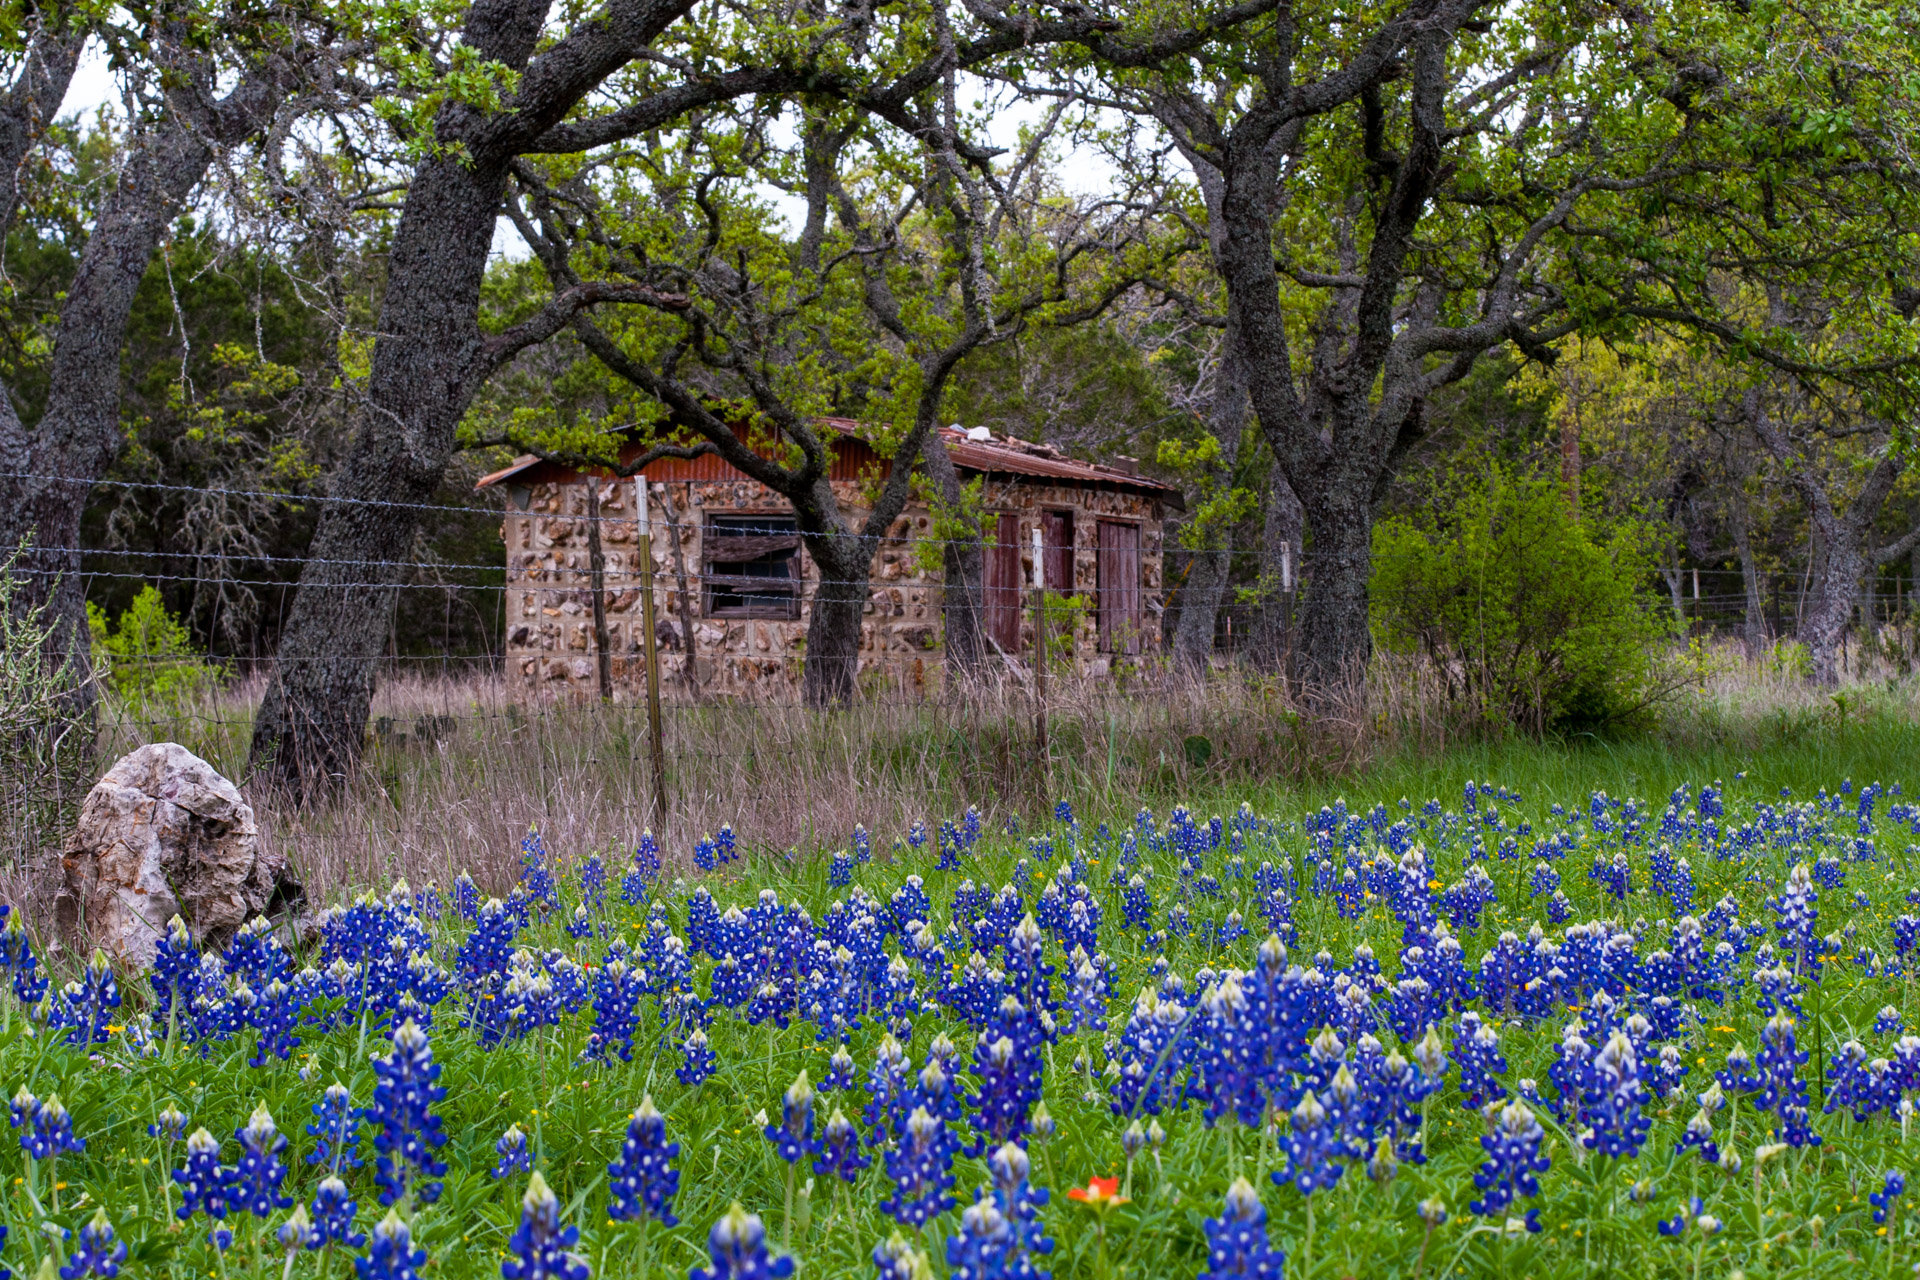 Burnet, Texas - A Red Stone Cottage With Bluebonnets